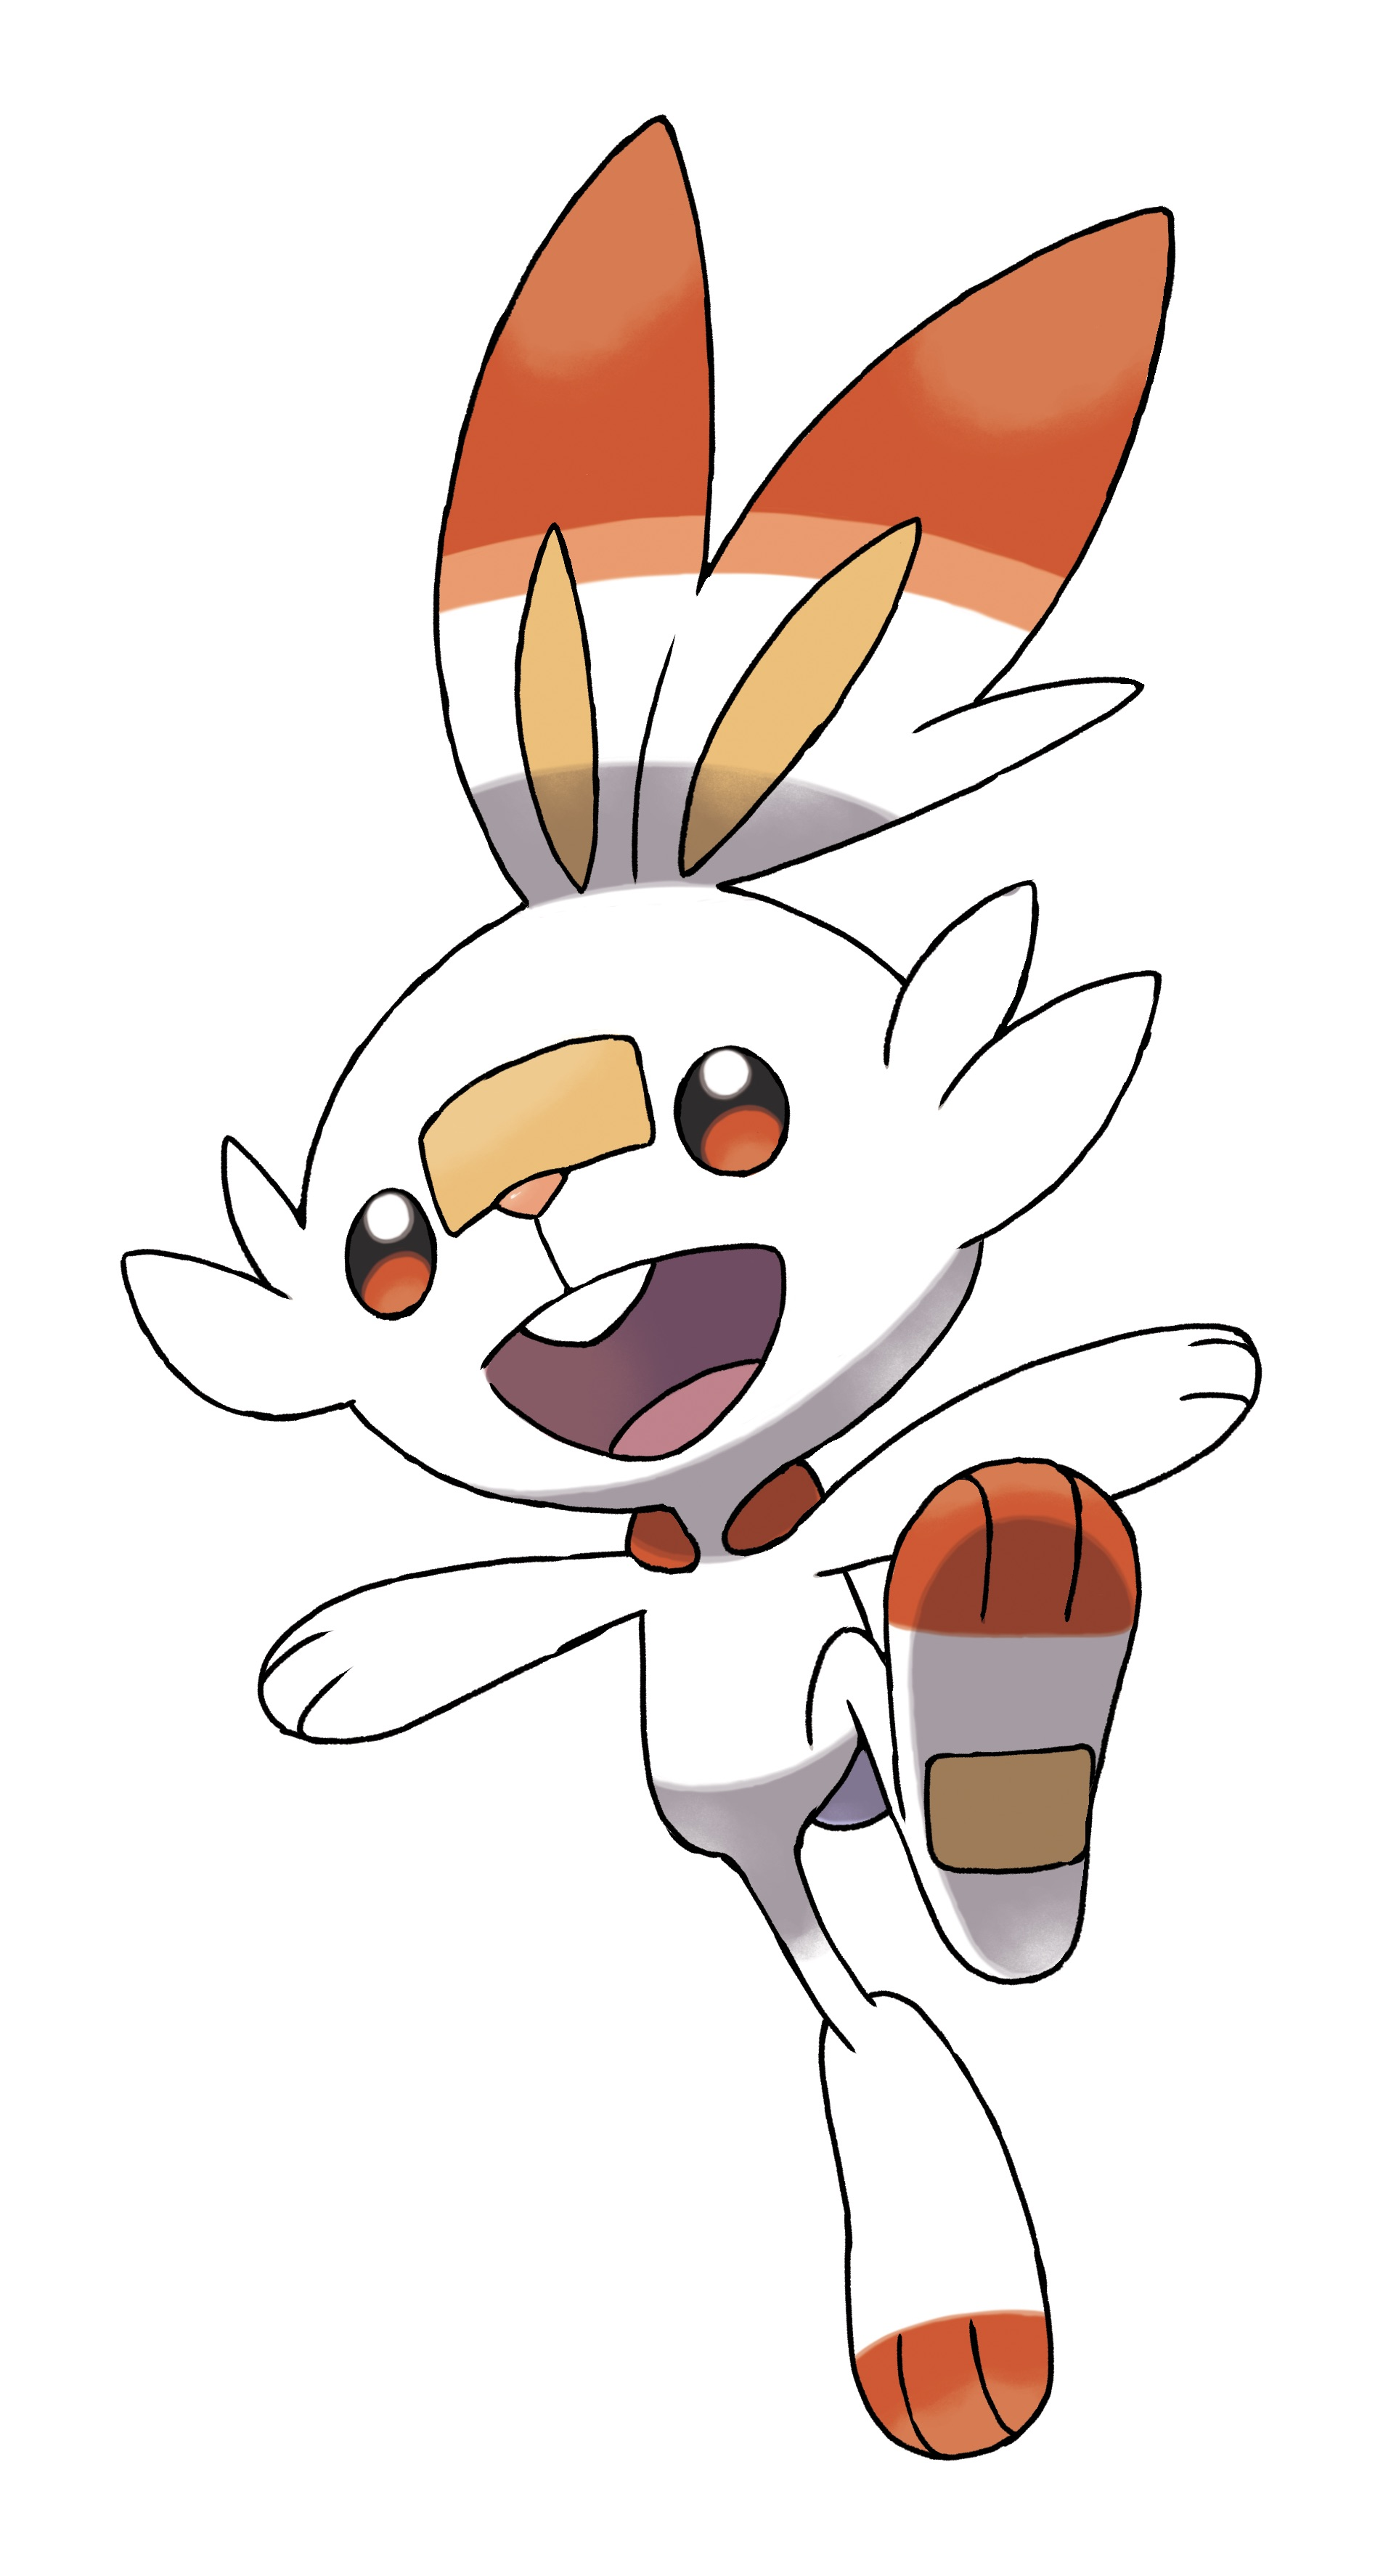 Grookey Scorbunny And Sobble Are Your Pokemon Sword And Shield Starters Nintendo Insider Sobble is a bit timid, shooting out attacks as scorbunny plays soccer or at least is a runner grookey plays cricket? grookey scorbunny and sobble are your